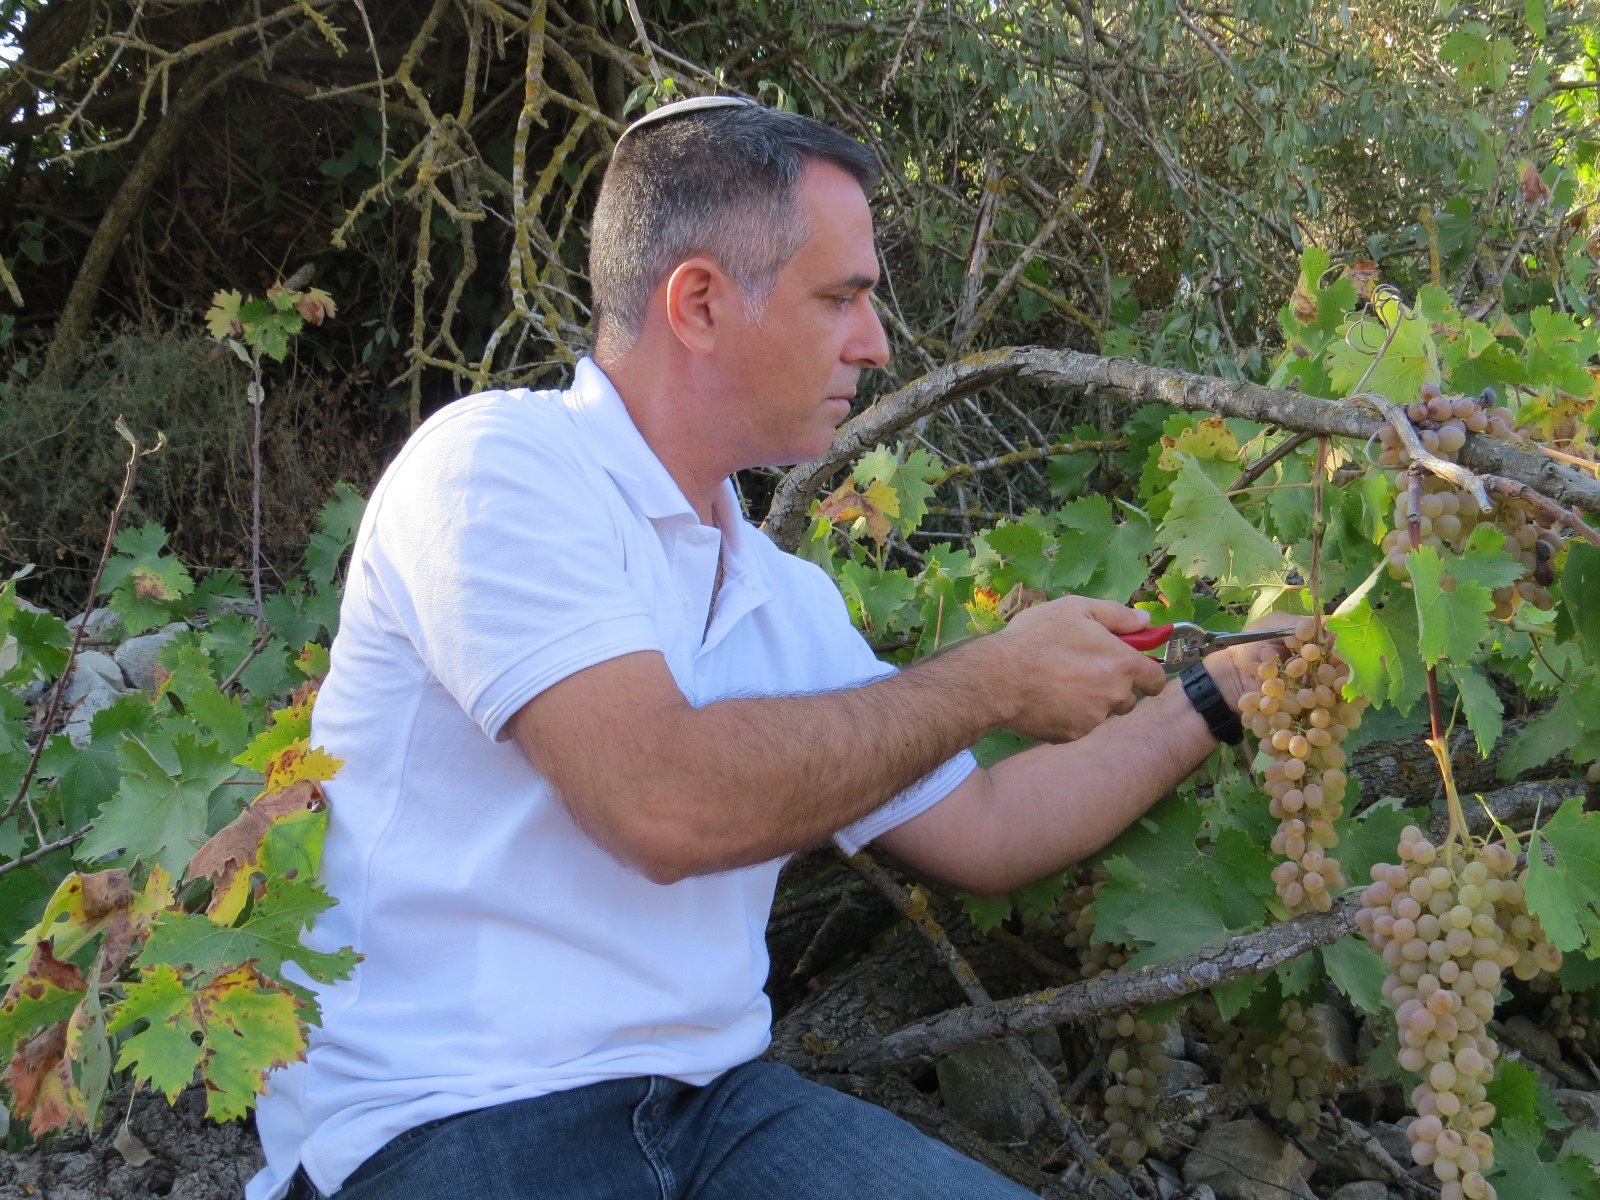 Wine researcher Elyashiv Drori in his Gvaot vineyard. Photo courtesy of Ariel University